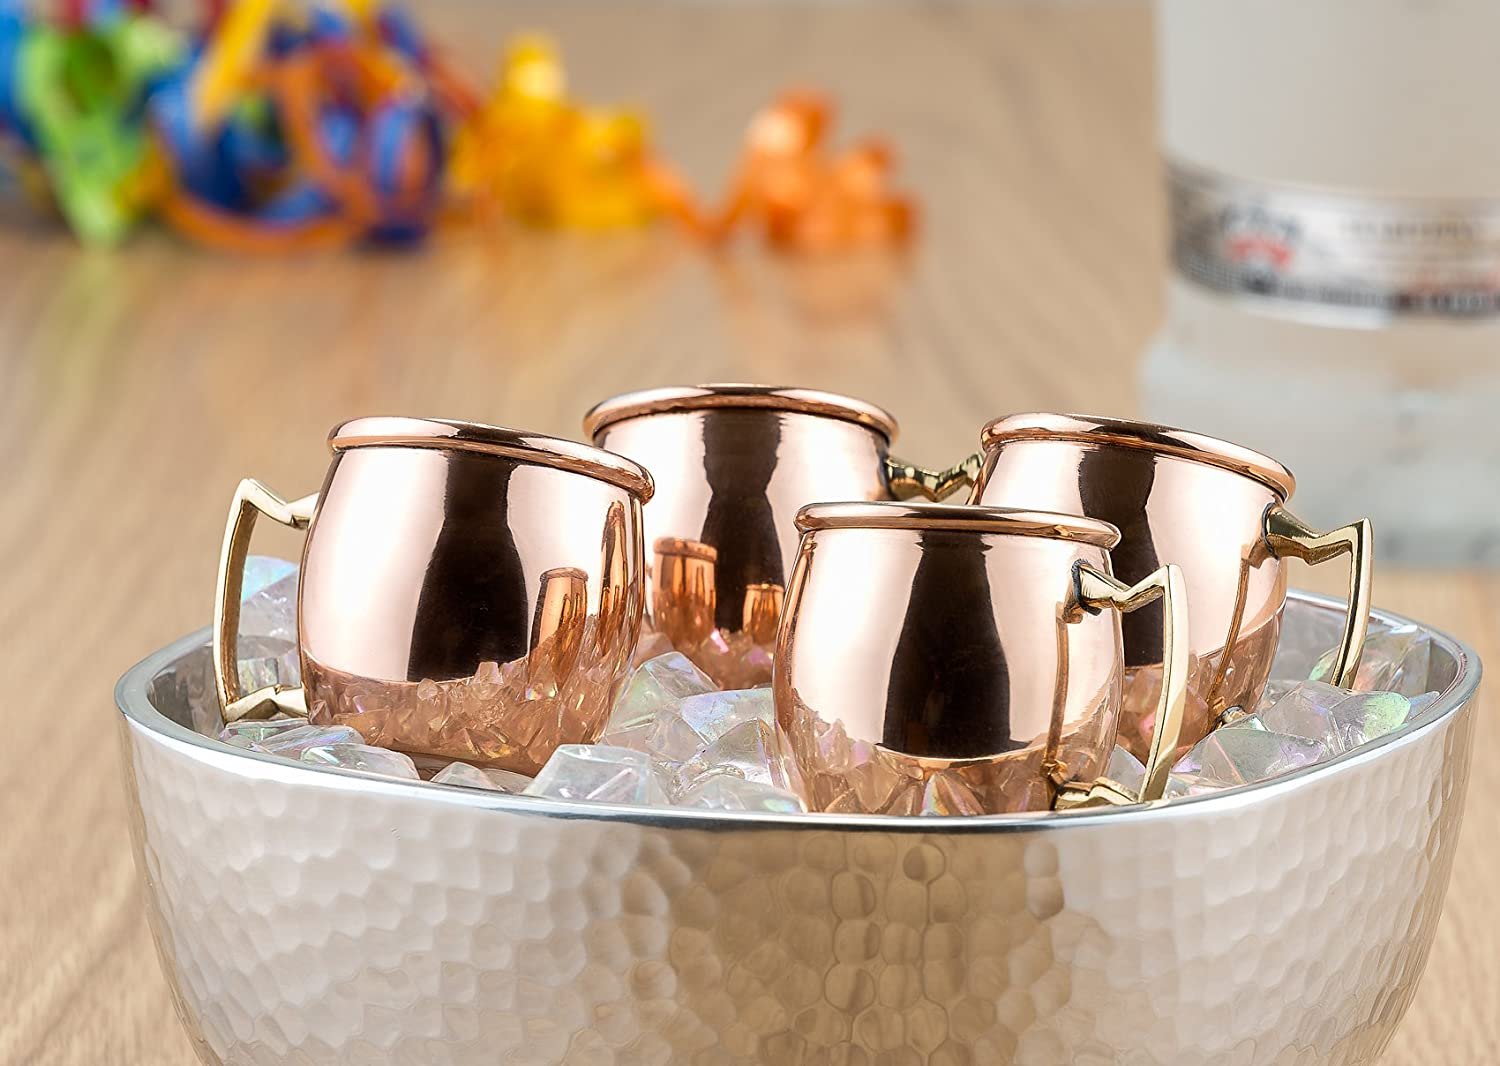 Old Dutch 2-Ounce Solid Copper Moscow Mule Shot Mugs, Set of 8 (OS418) Old Dutch Int'l LTD